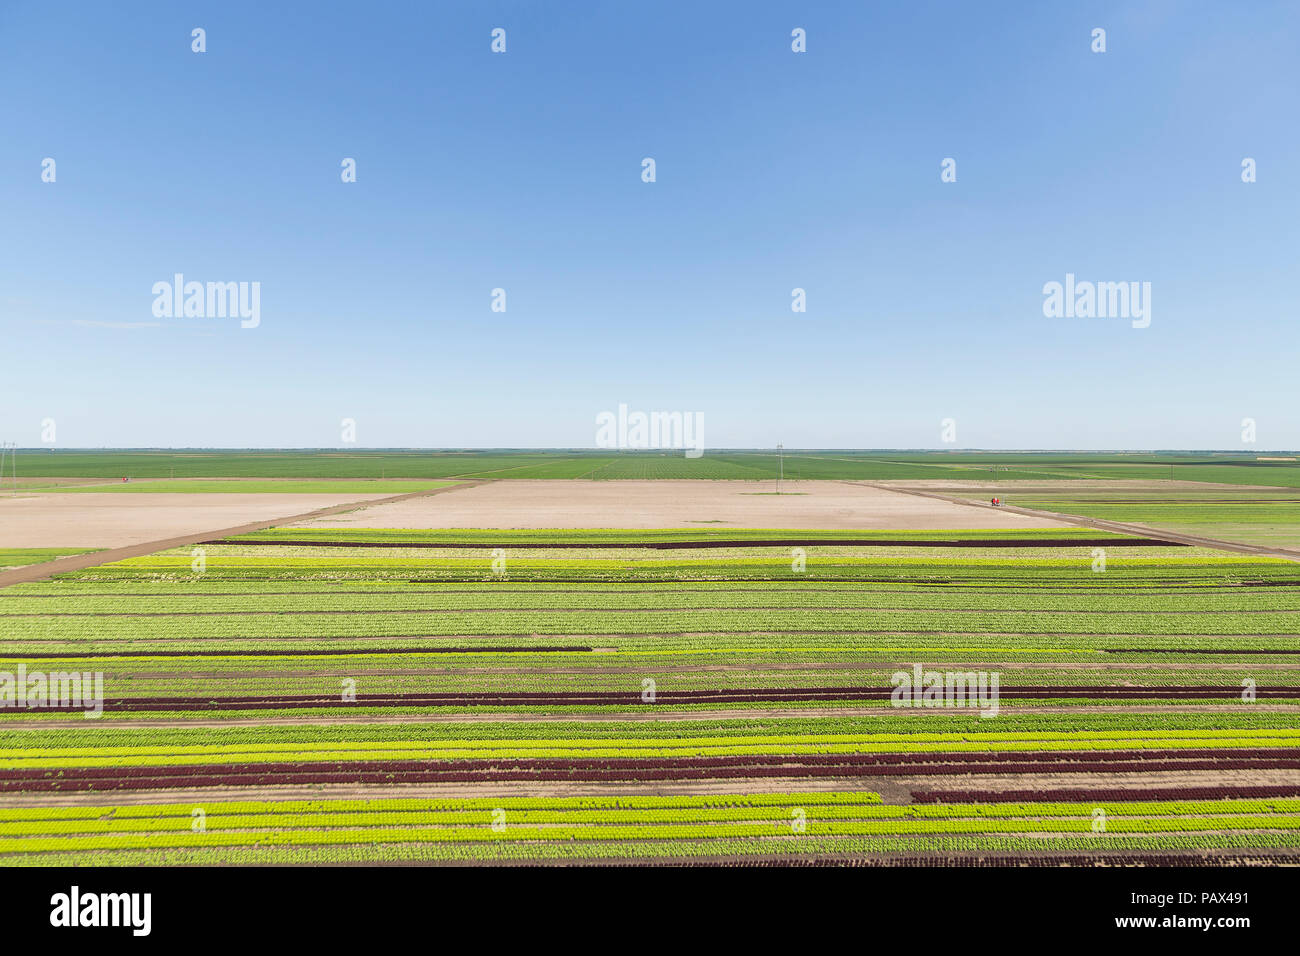 Vast field of industrial agricultural produce - Stock Image